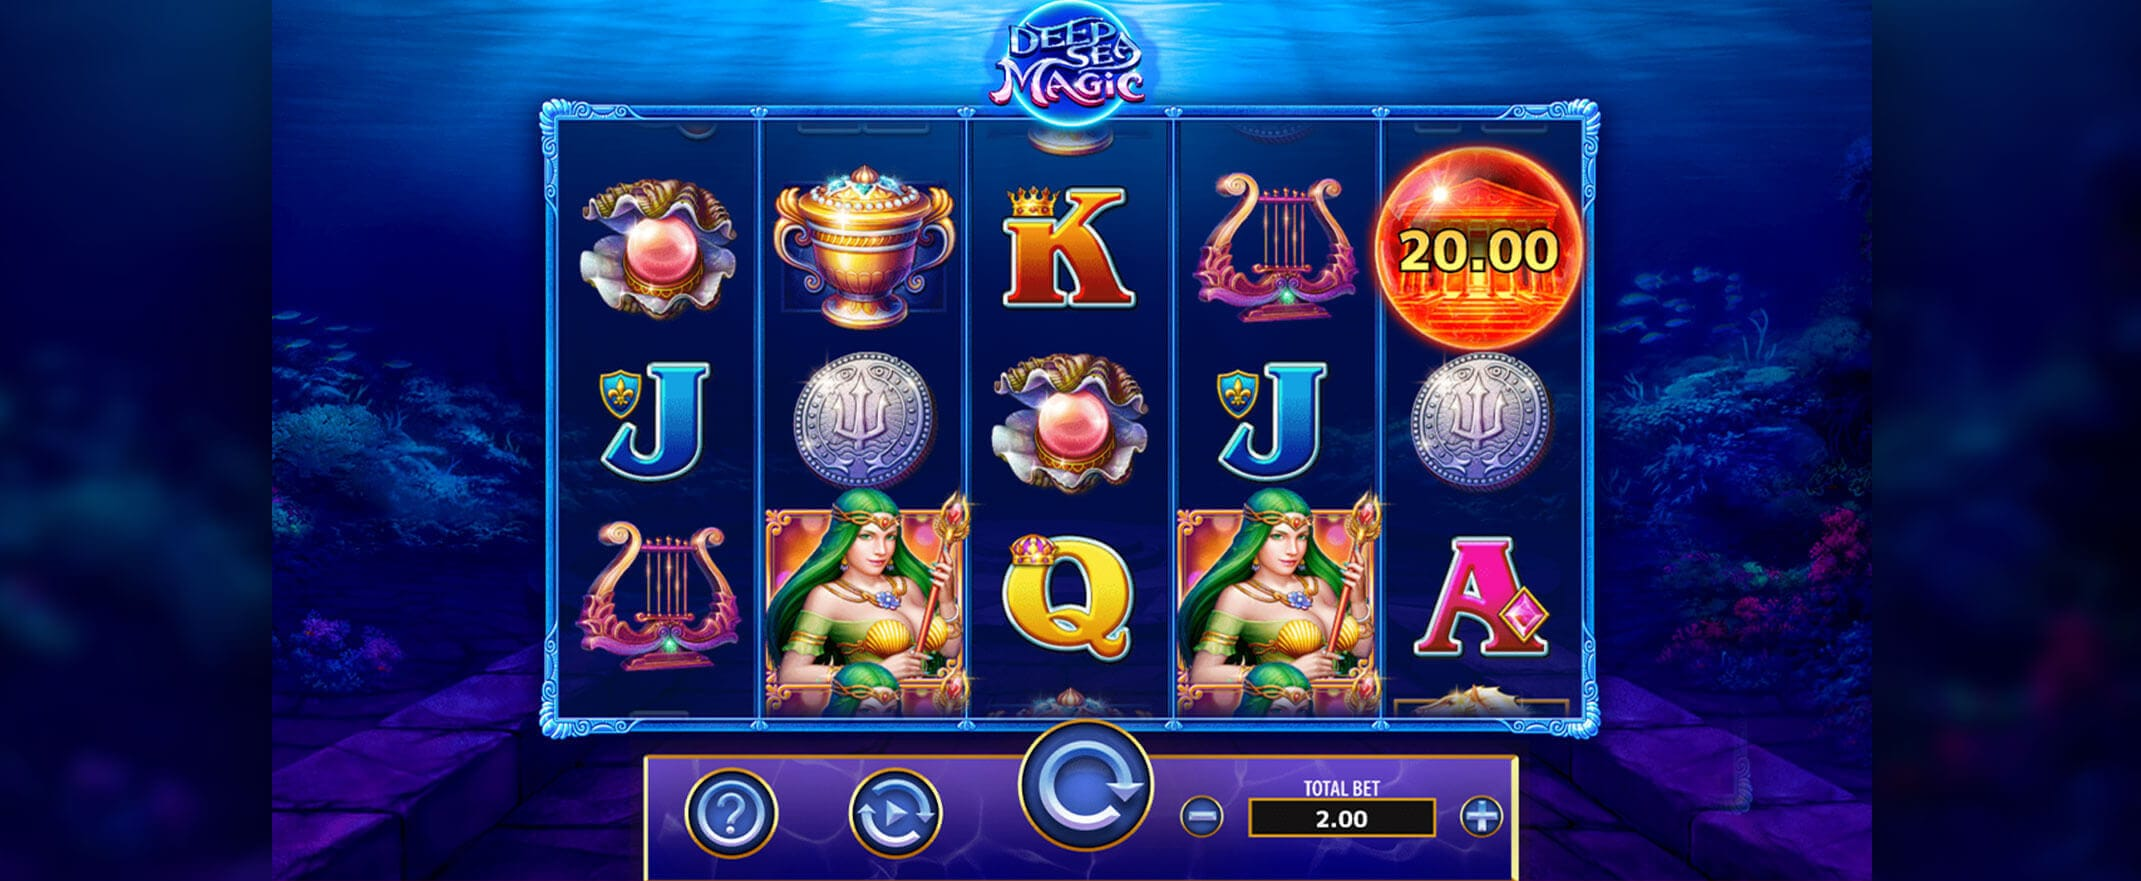 Deep Sea Magic Slot Gameplay